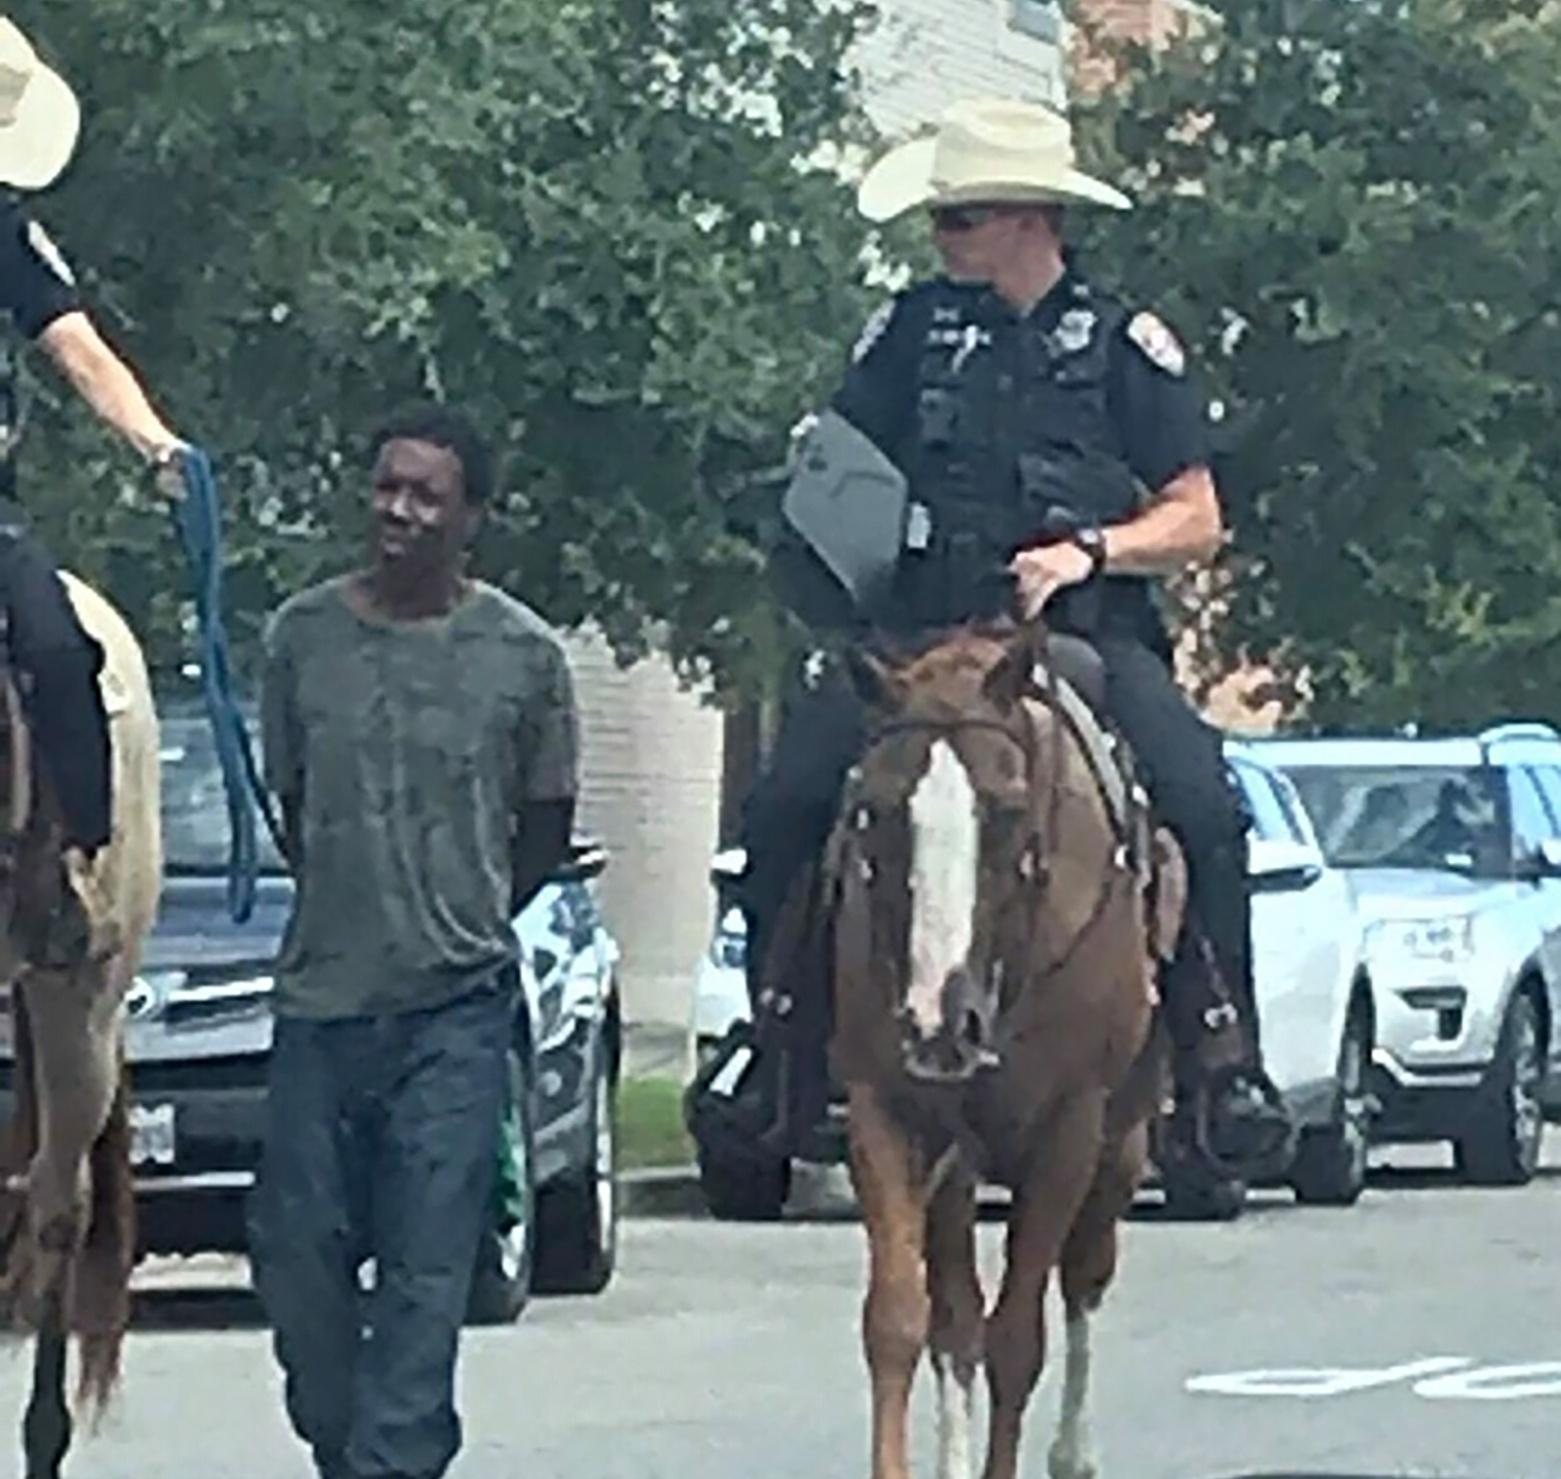 White officers in Texas who led black man on rope avoid criminal charges